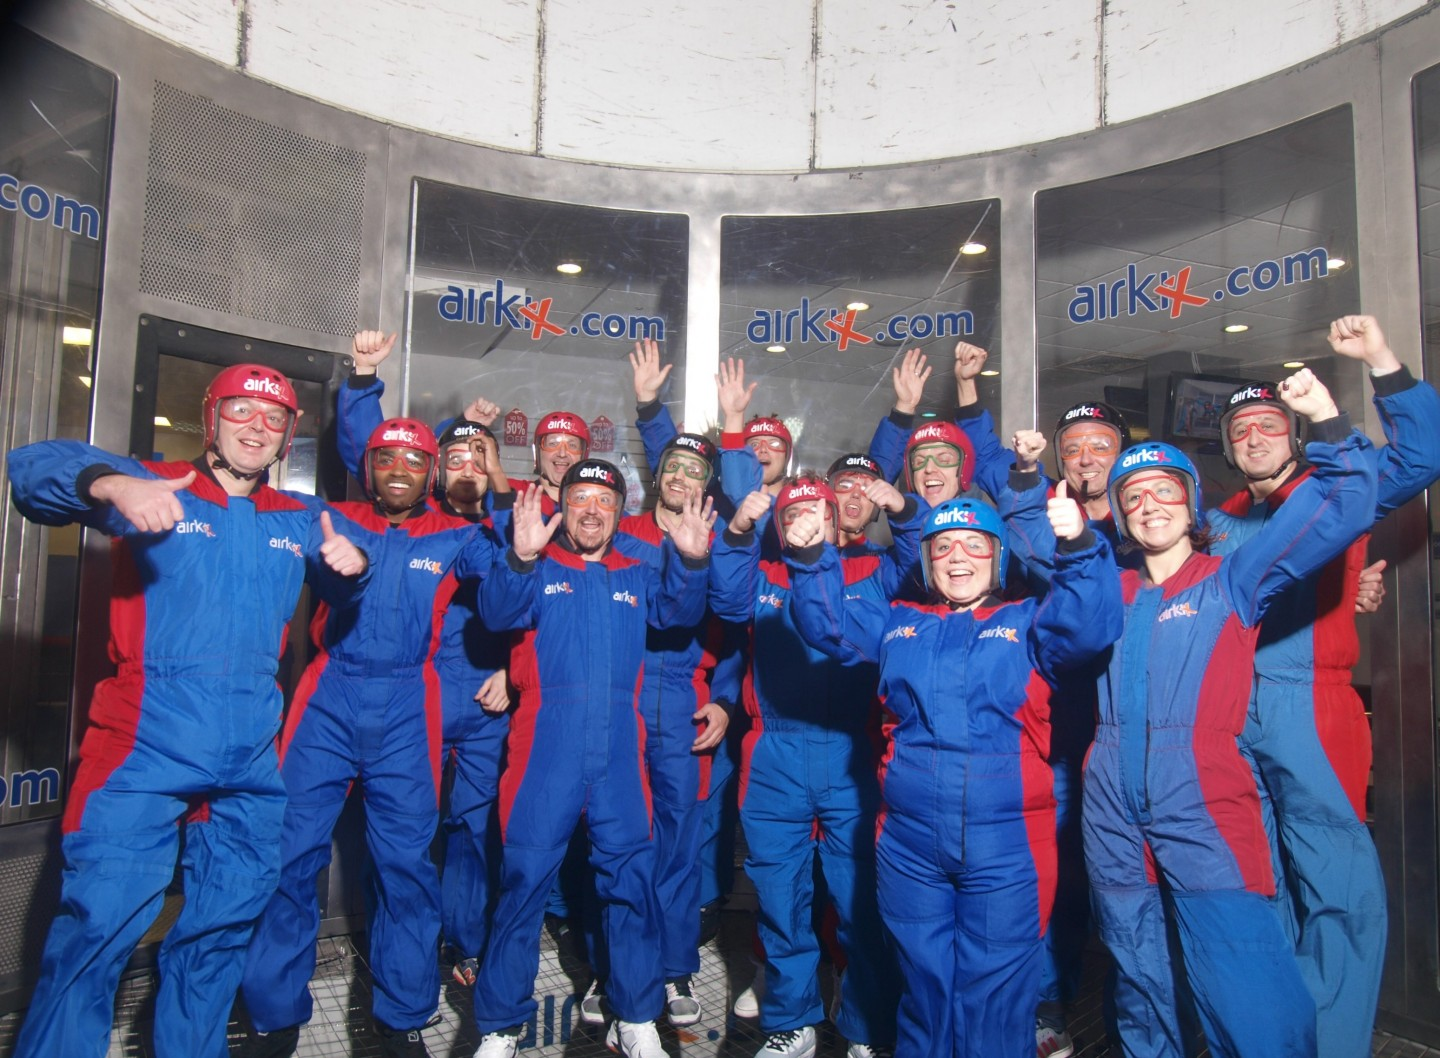 Airkix Manchester Corporate Group NCN